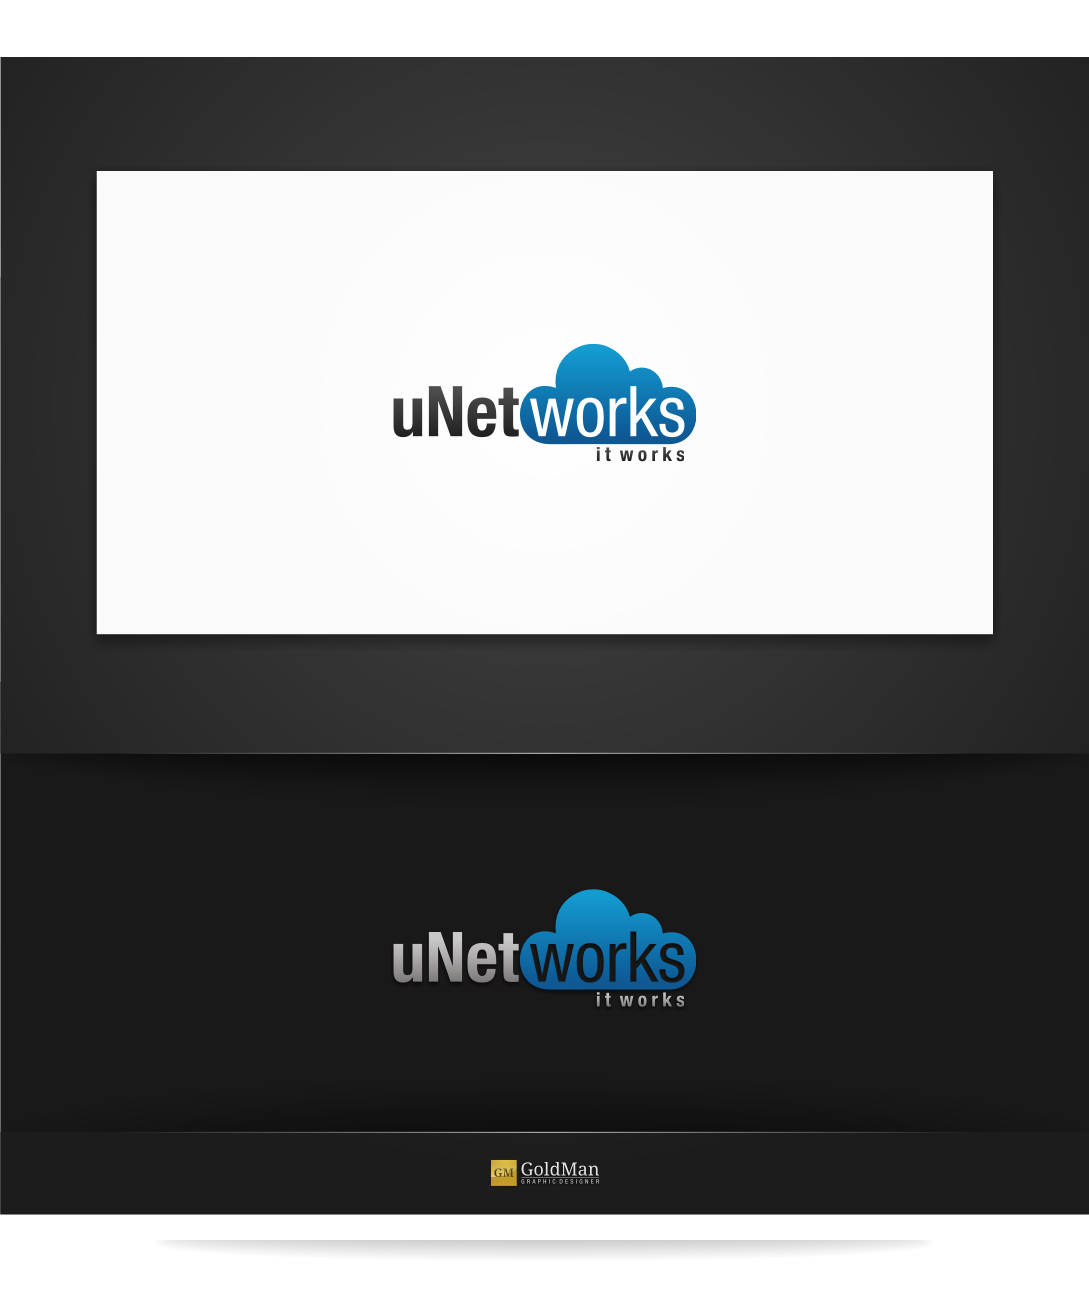 New logo wanted for uNetworks